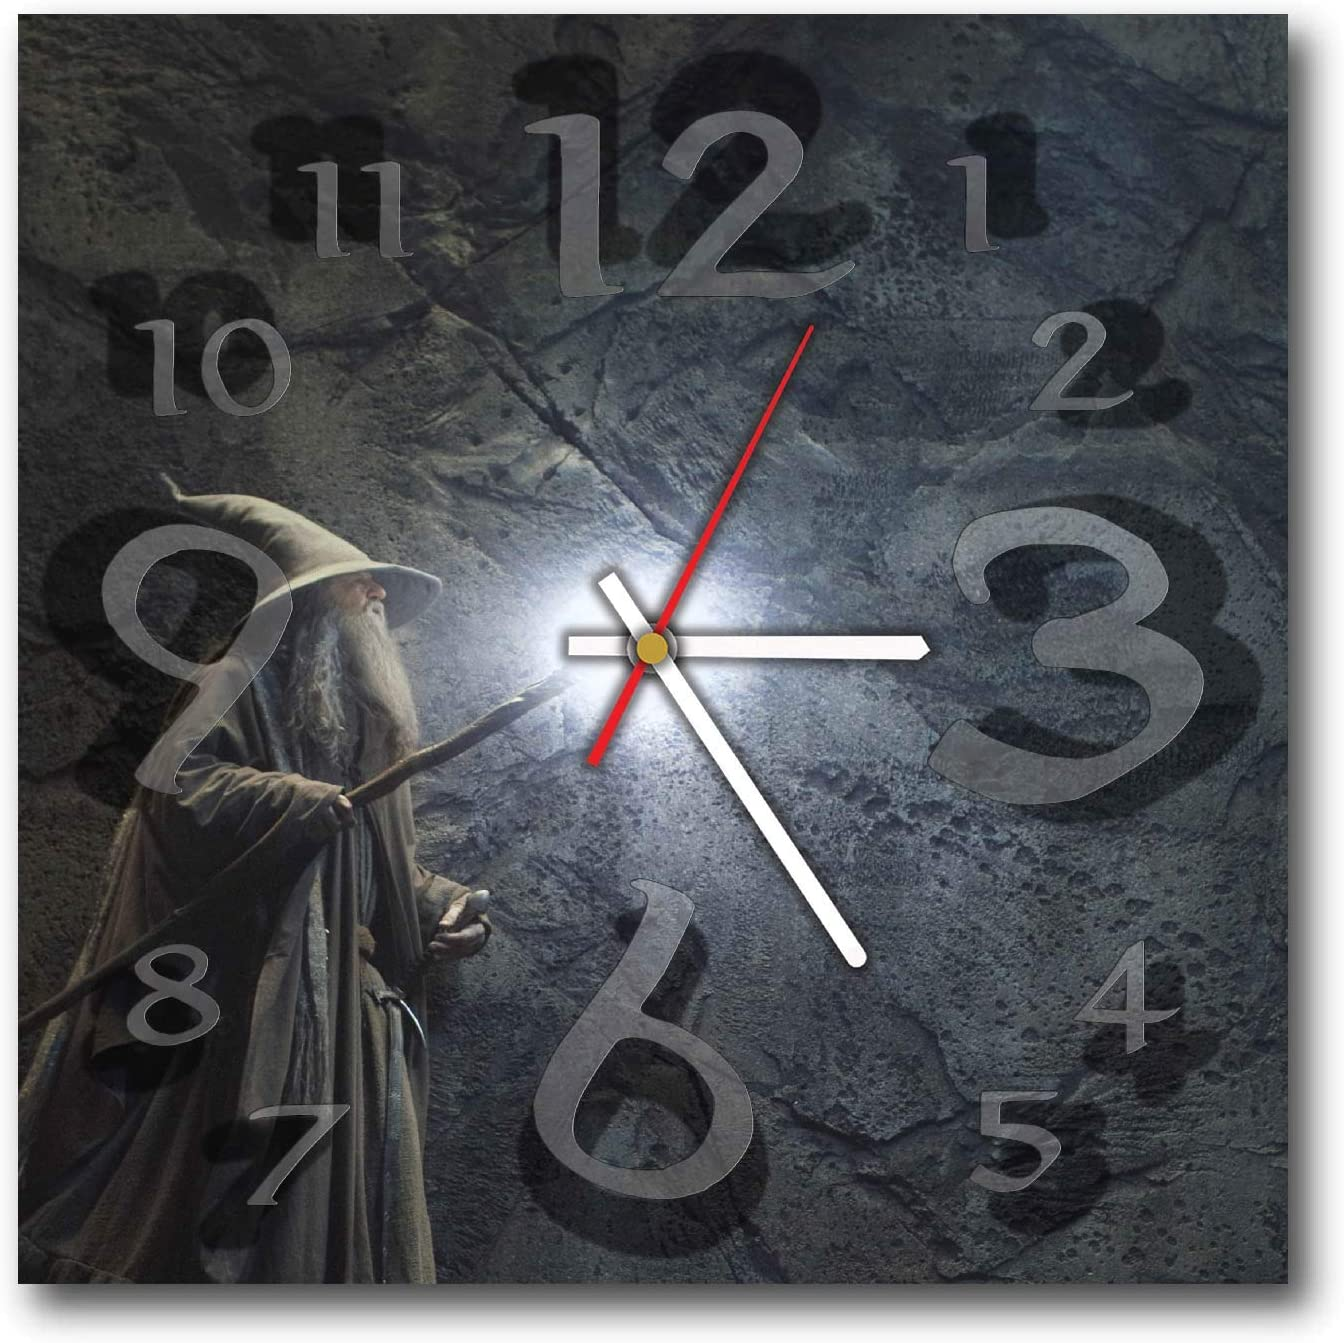 """Lord of The Rings 11.4"""" Wonderful Handmade Wall Clock - Unique Design - BE Special - The Best Present Made of Plastic"""